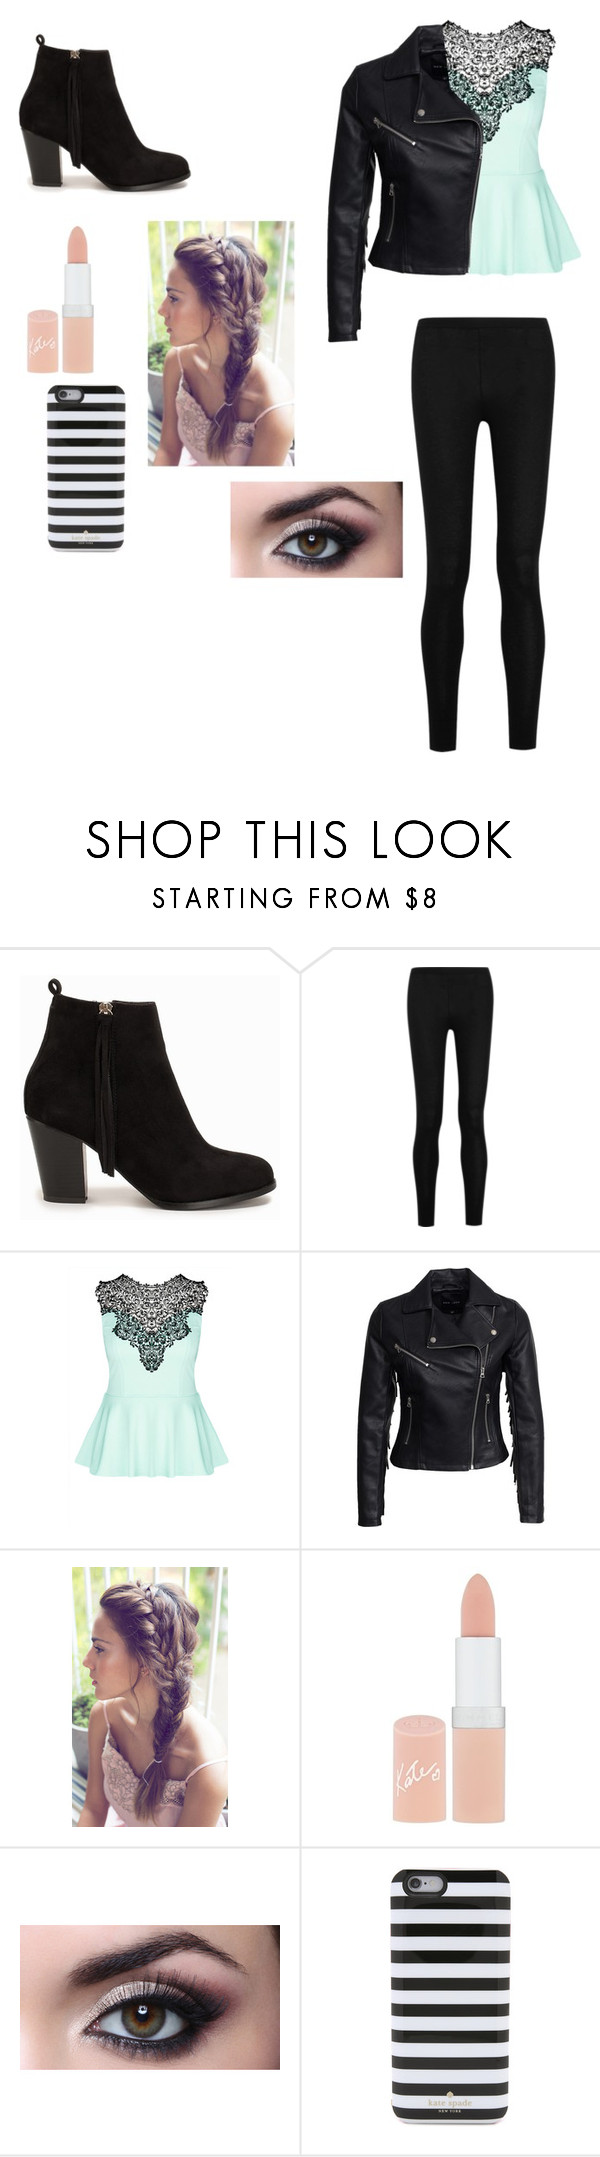 """""""Very chic"""" by chloe2234 ❤ liked on Polyvore featuring beauty, Nly Shoes, Donna Karan, City Chic, New Look, Rimmel and Kate Spade"""